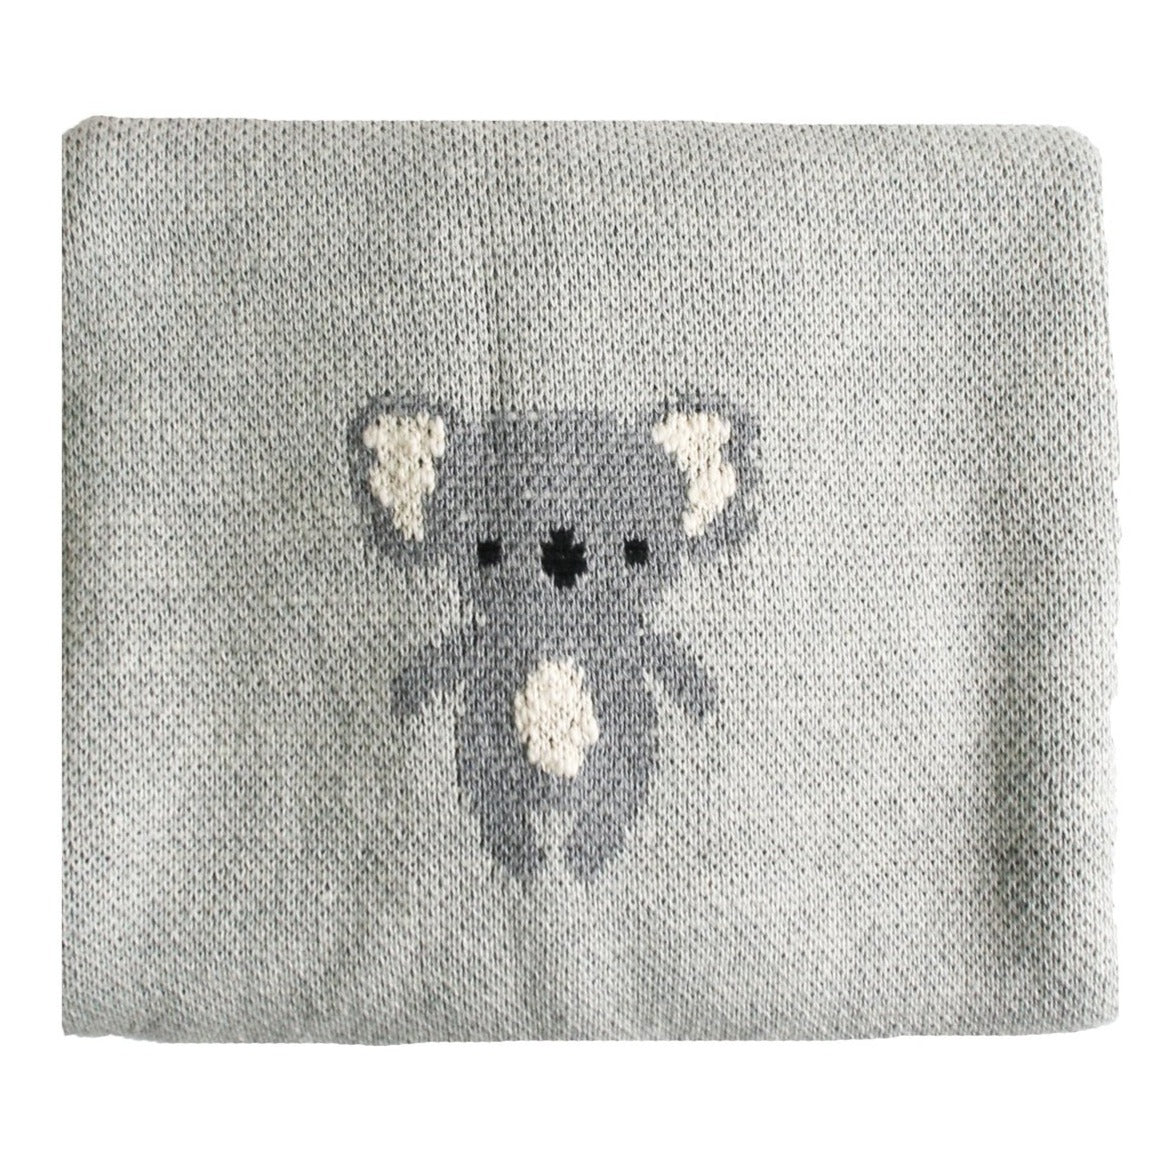 Unisex Baby Blanket. Shop in Niddrie at Sticky Fingers Children's Boutique